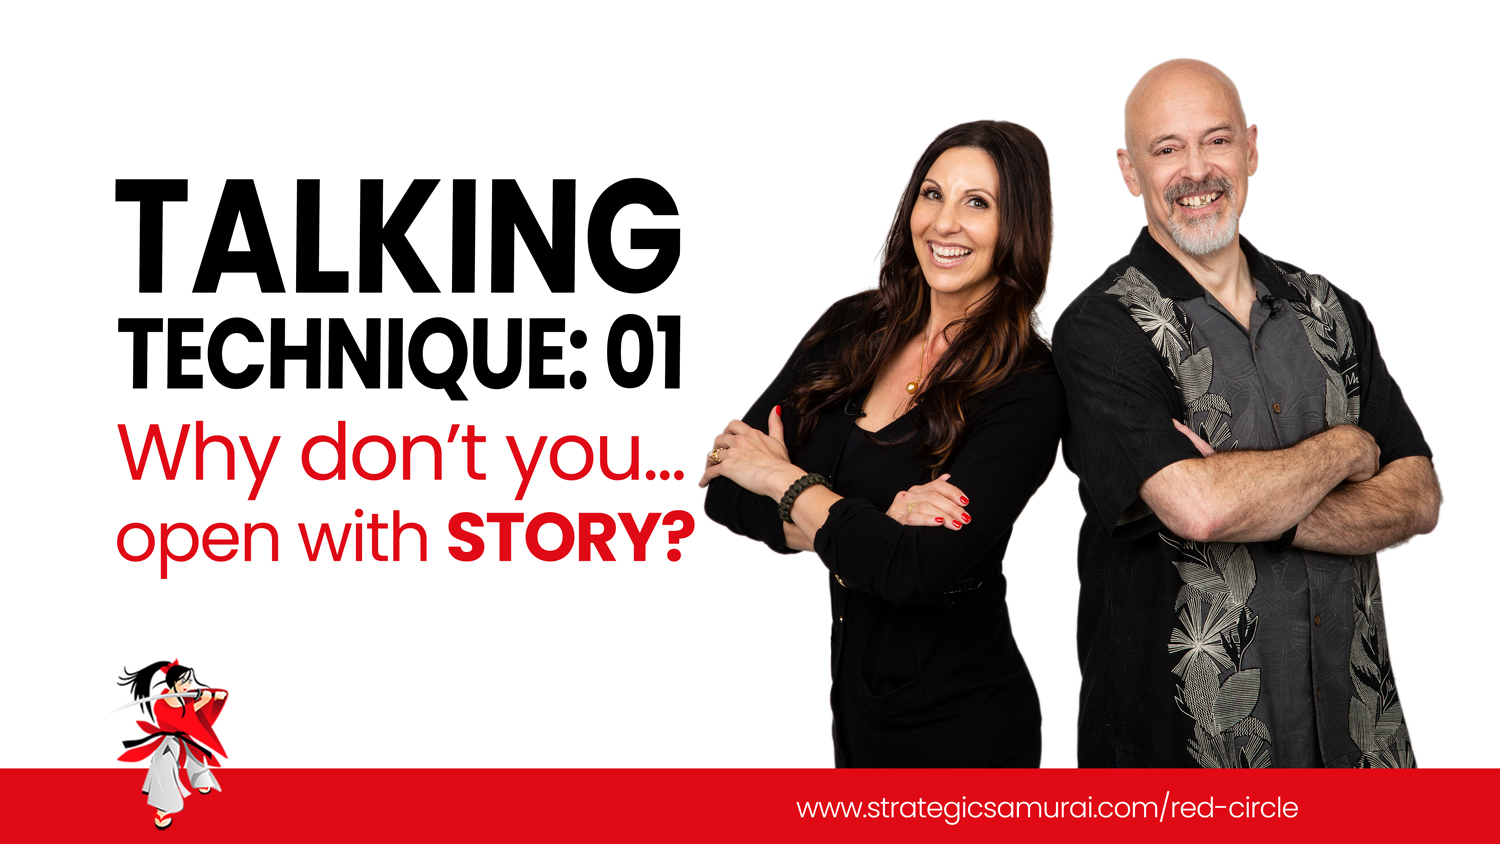 https://kymberlee.com/talking-technique-01-open-your-talk-with-a-story/